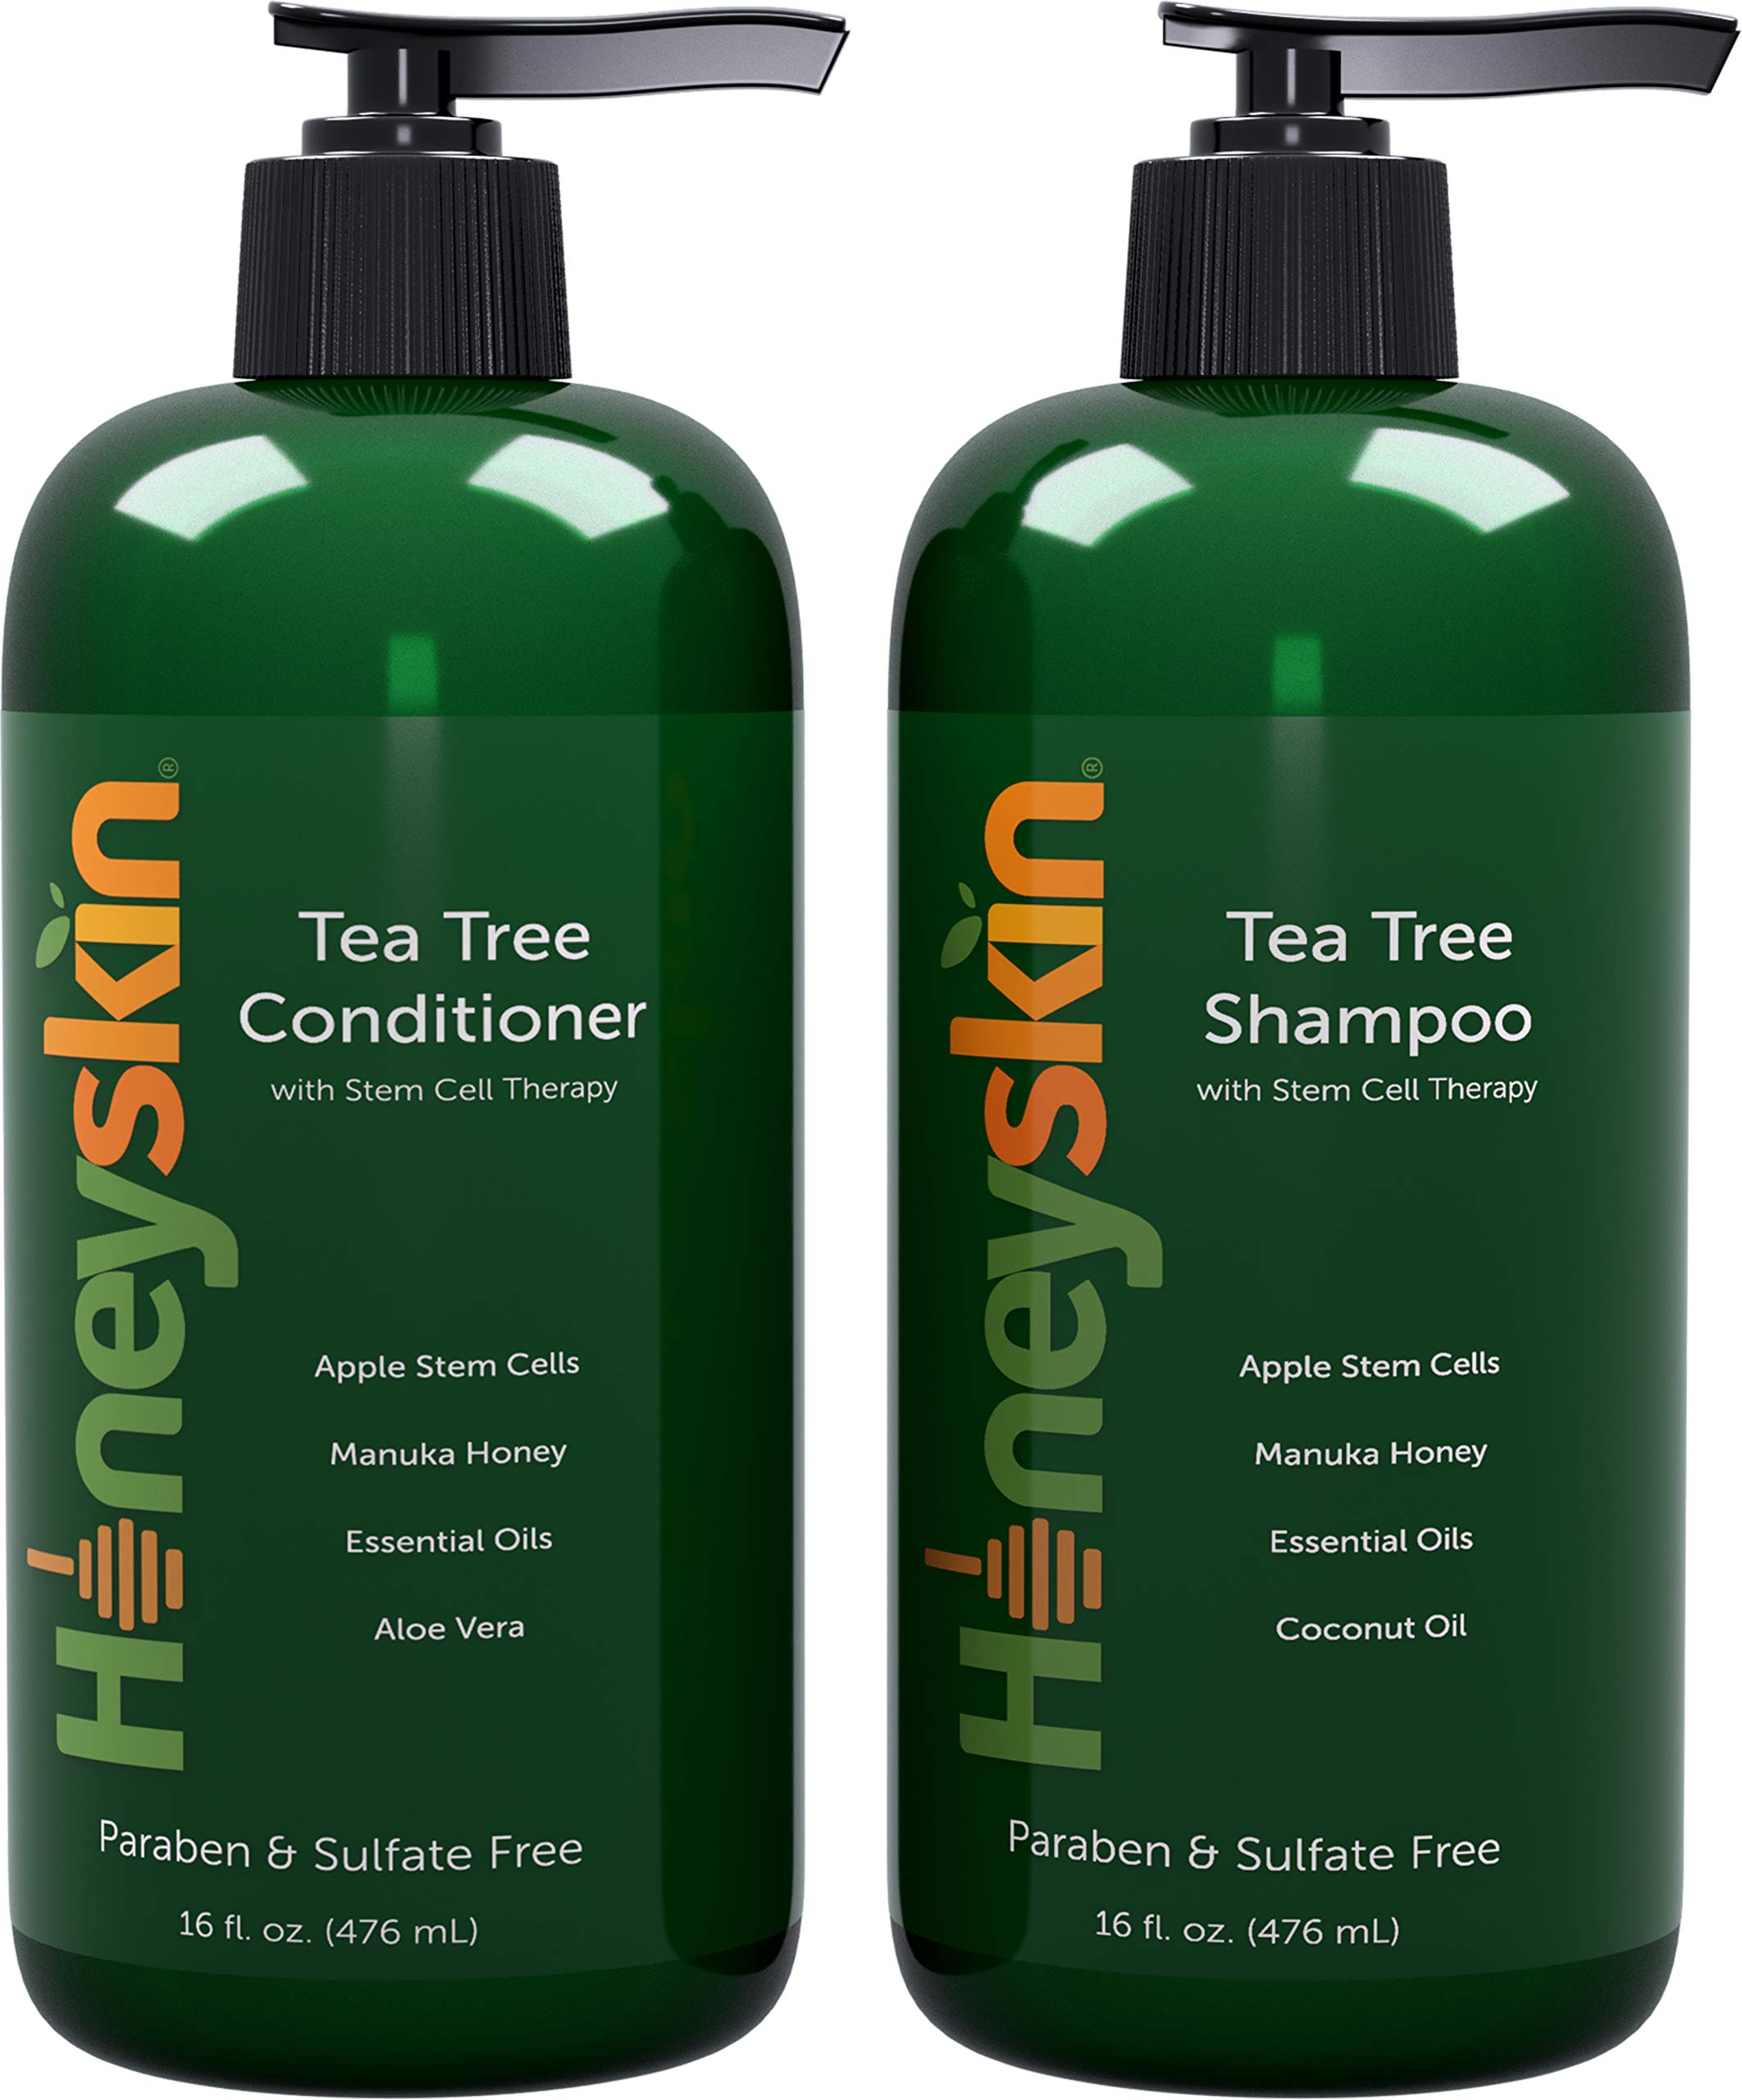 Tea Tree Oil Shampoo Conditioner Set - Manuka Honey, Stem Cell & Coconut - Dandruff & Scalp Acne Treatment - Soothes Itchy Scalp & Deep Conditioner - Paraben & Sulfate Free - Made in USA (16oz) by Honeyskin Organics